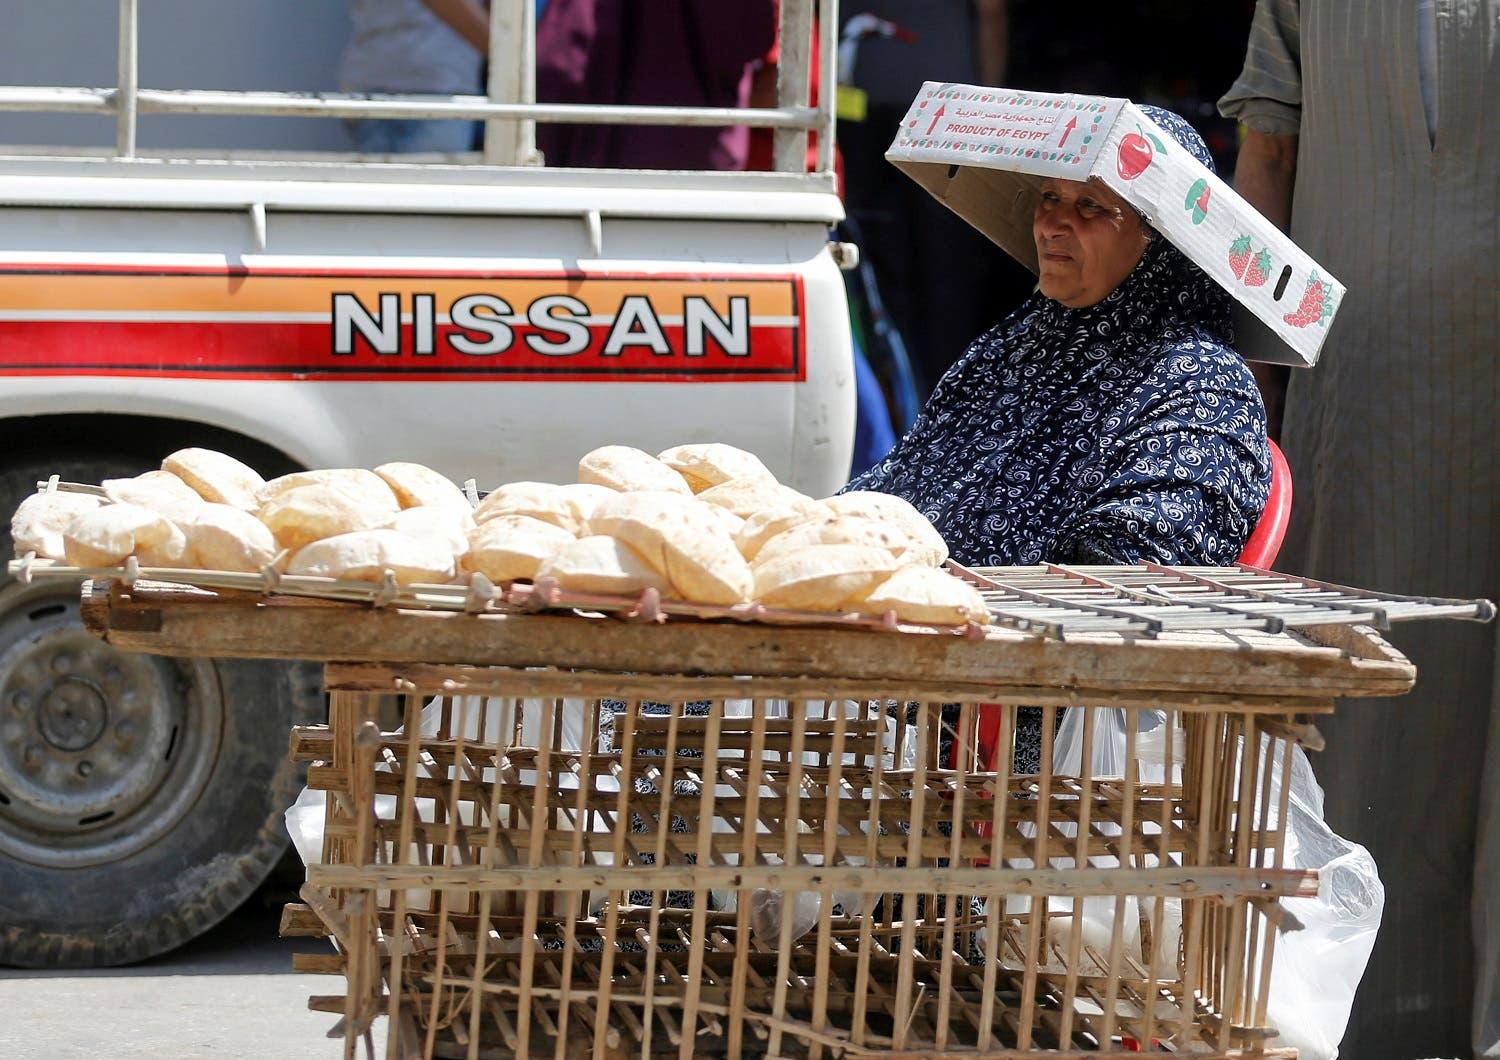 A street vendor sells bread at a street corner in central Cairo, Egypt May 25, 2016. (Reuters)